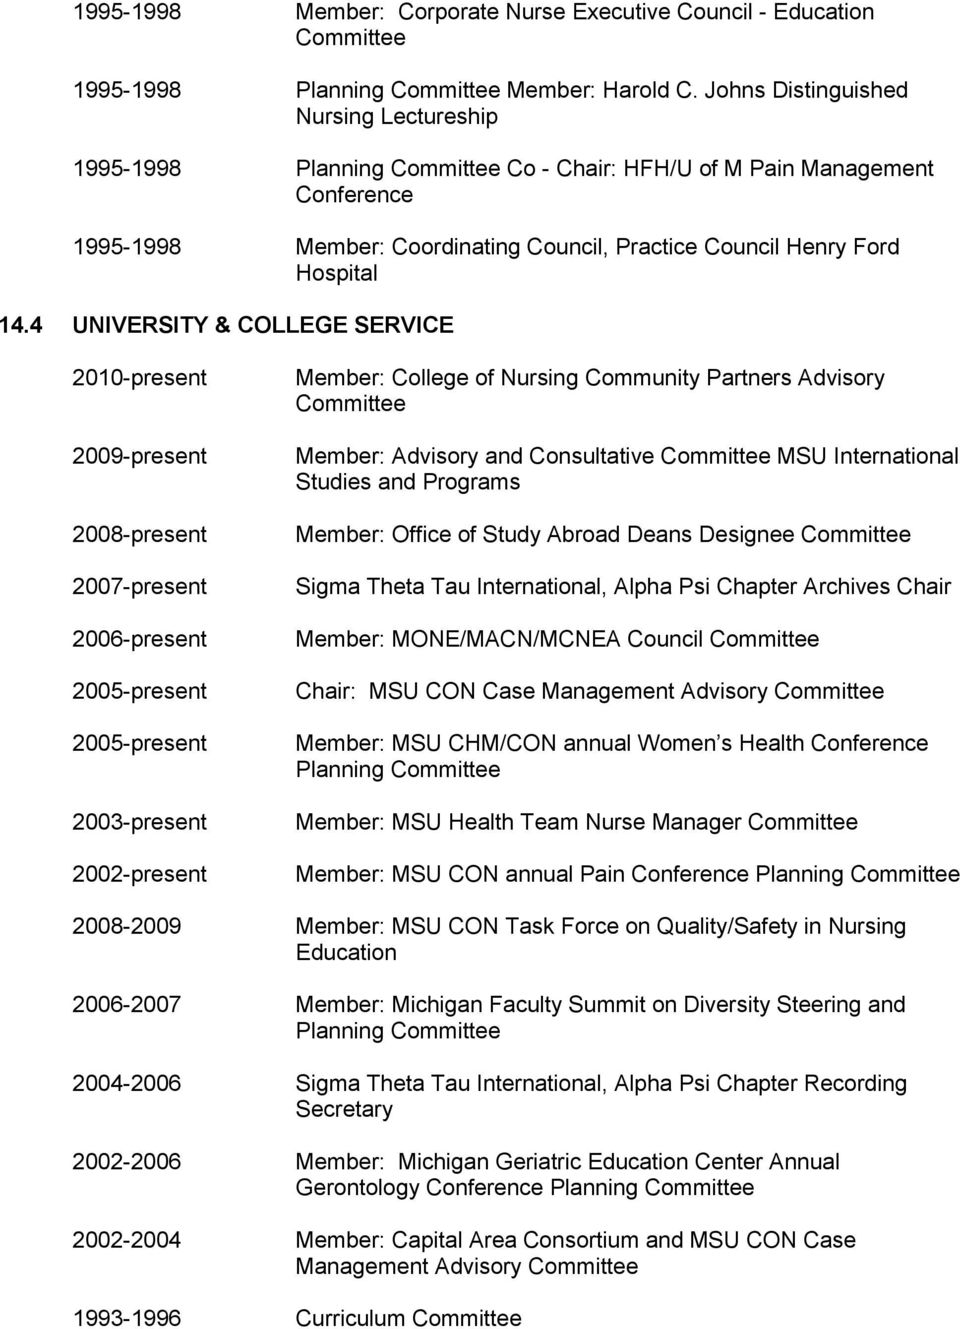 4 UNIVERSITY & COLLEGE SERVICE 2010-present 2009-present 2008-present 2007-present 2006-present 2005-present 2005-present 2003-present 2002-present Member: College of Nursing Community Partners